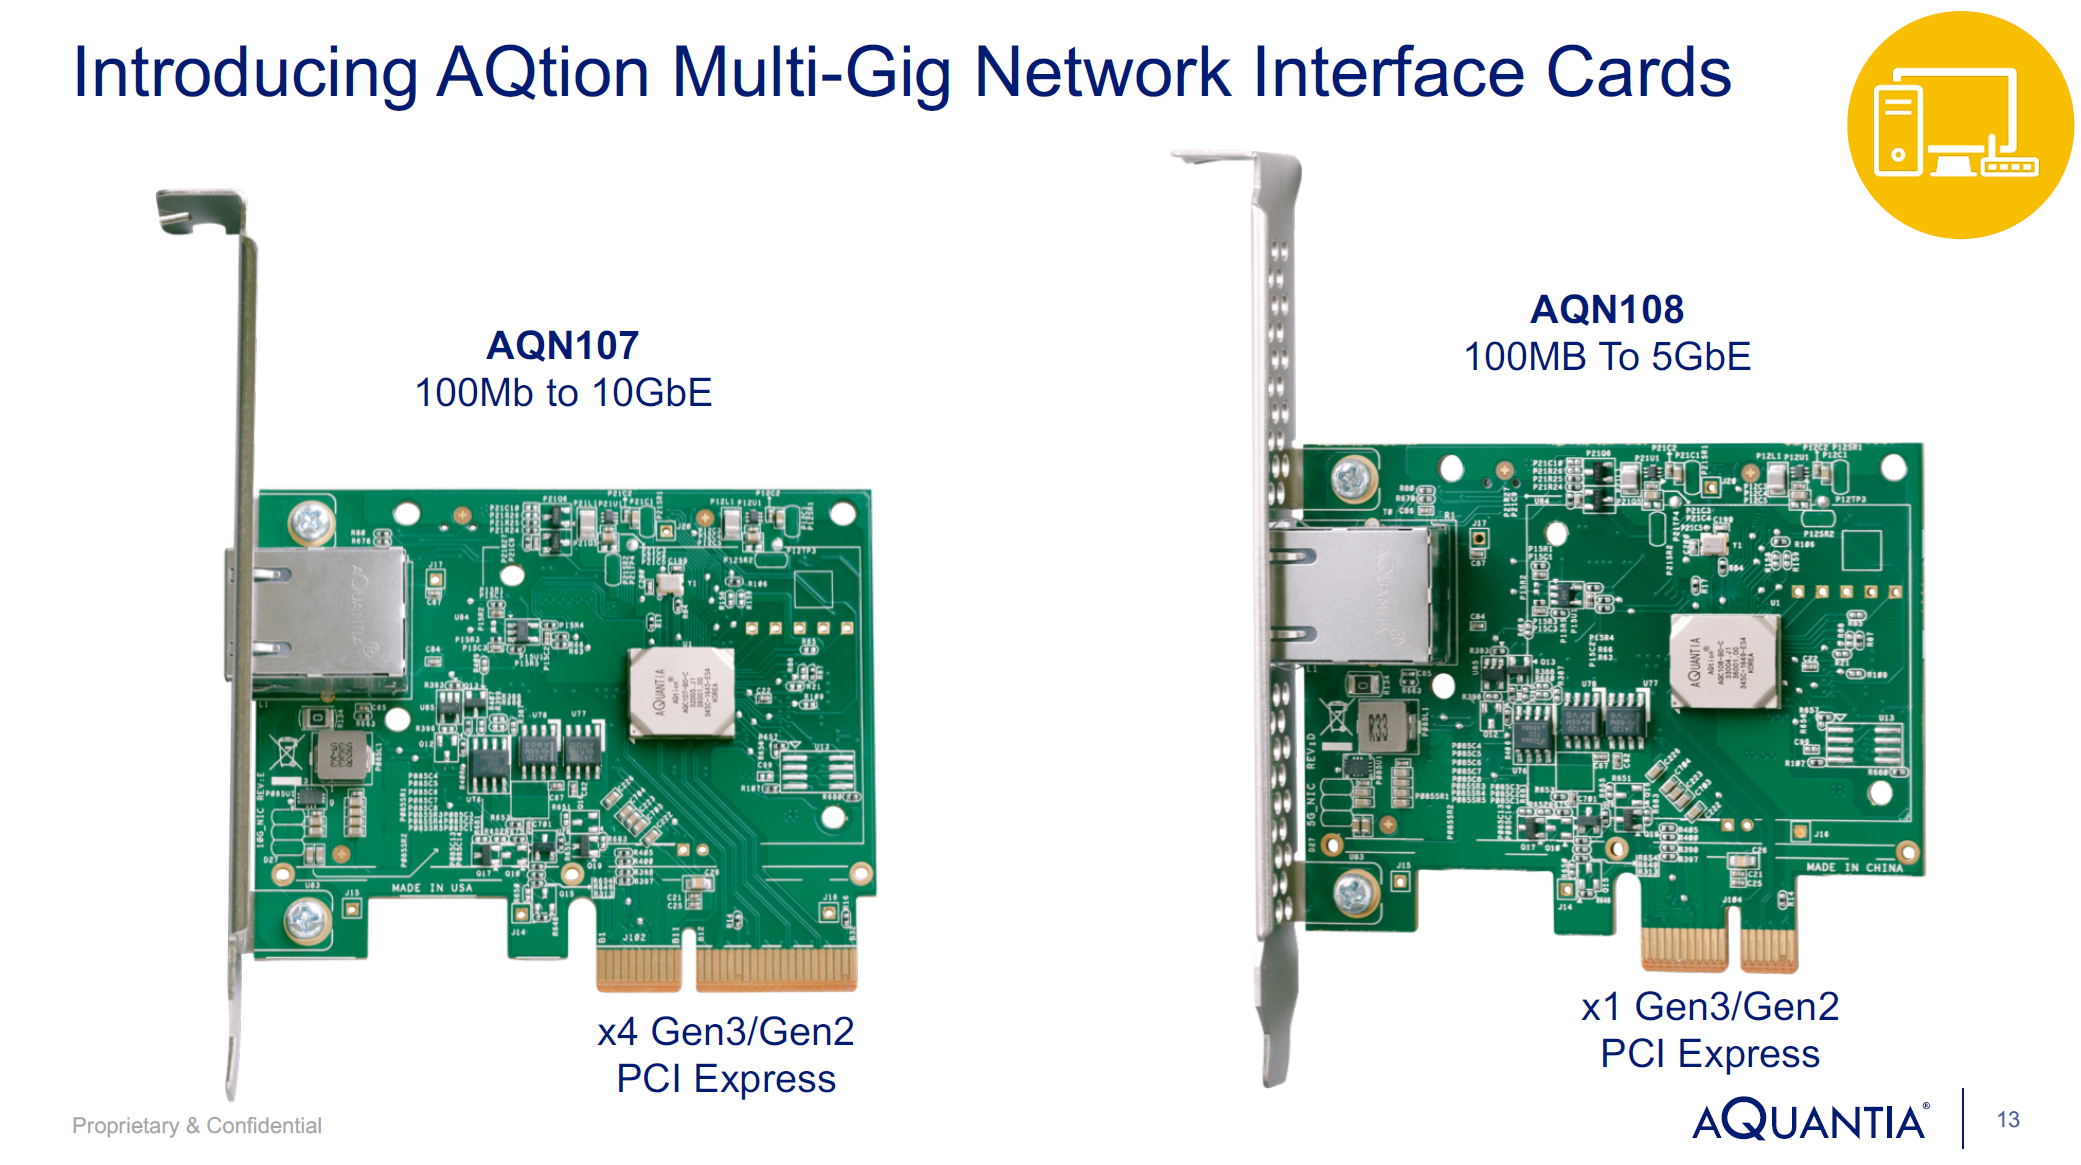 Aquantia Launch AQtion 5G/2 5G/1G Multi-Gigabit Ethernet